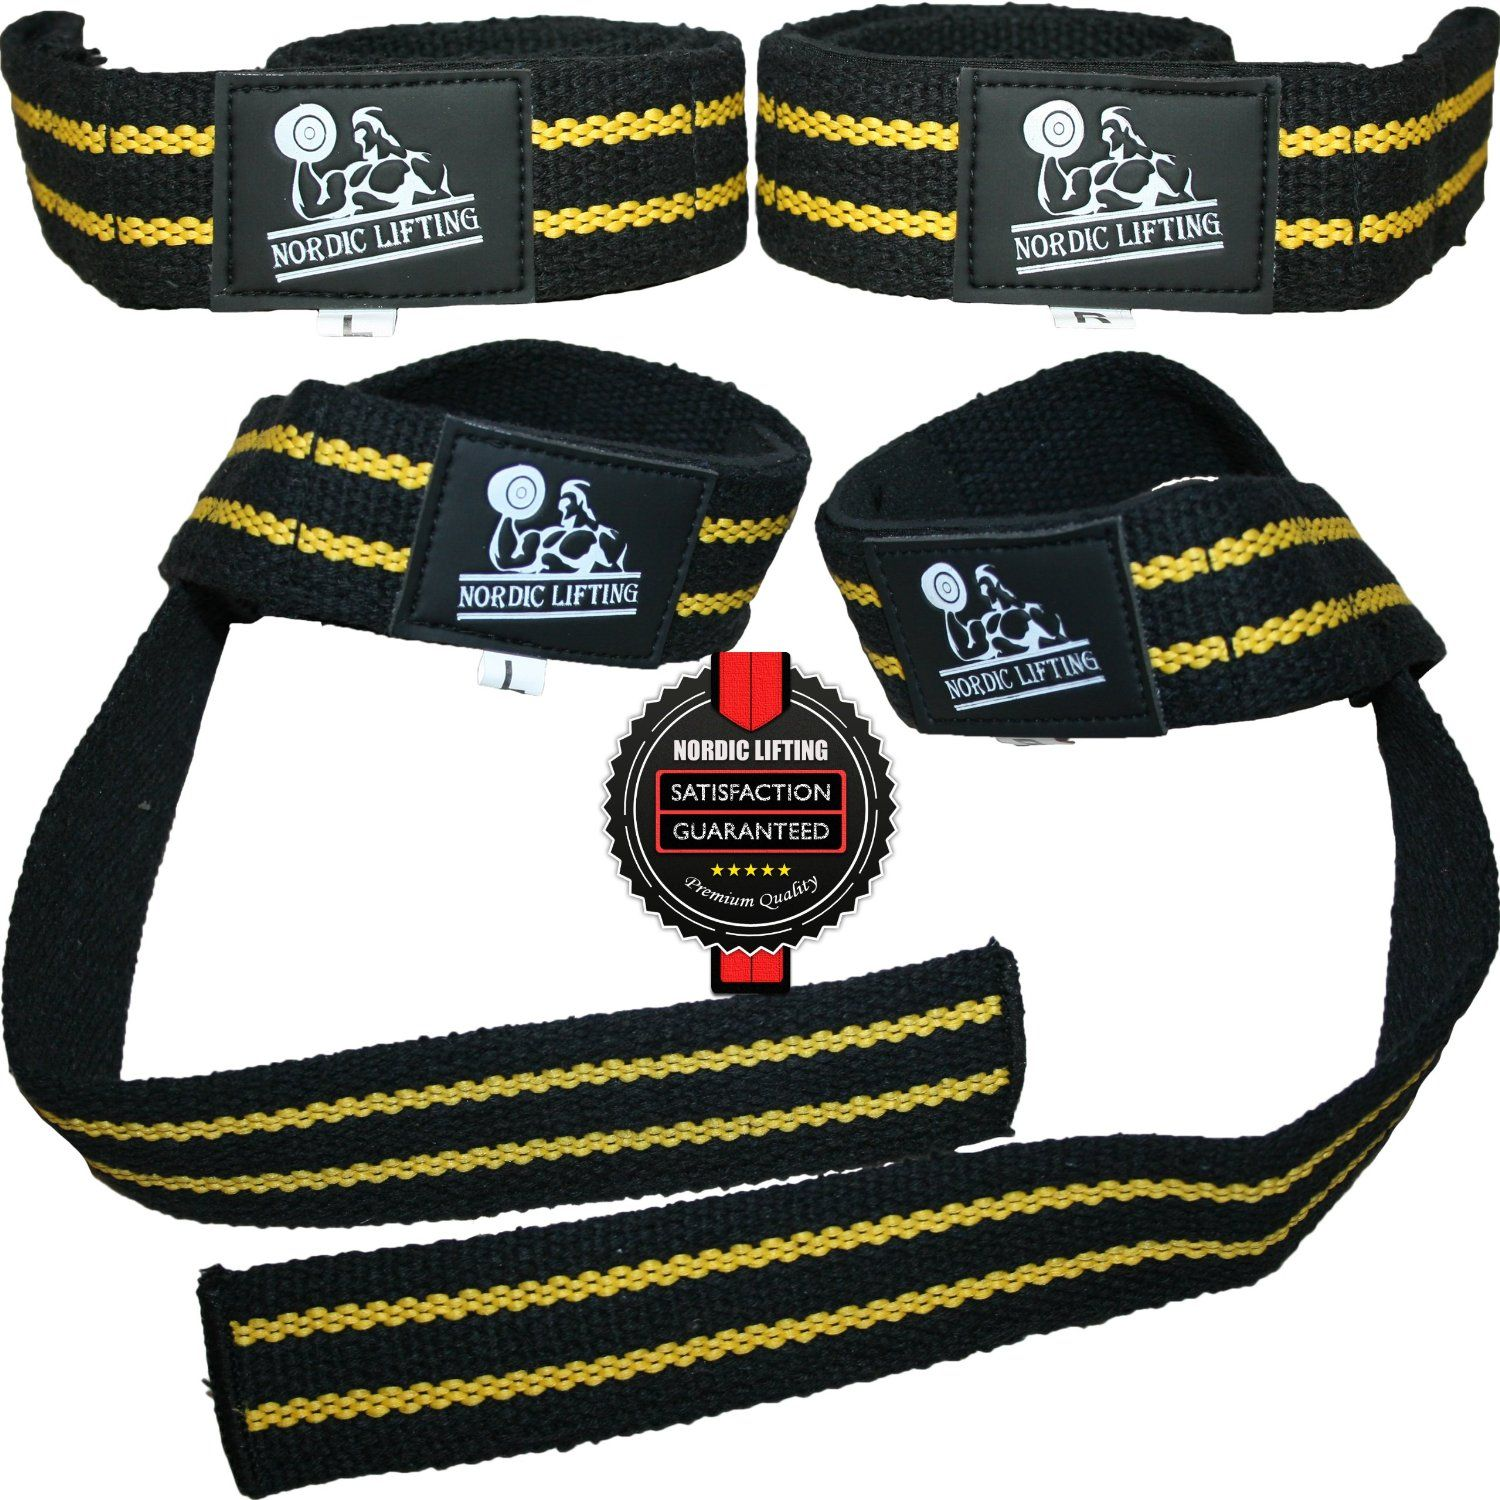 Lifting Straps (2 Pairs/4 Straps) for Weightlifting/Crossfit/Workout/Gym/Powerlifting  by Nordic Lifting $16.97  In Stock